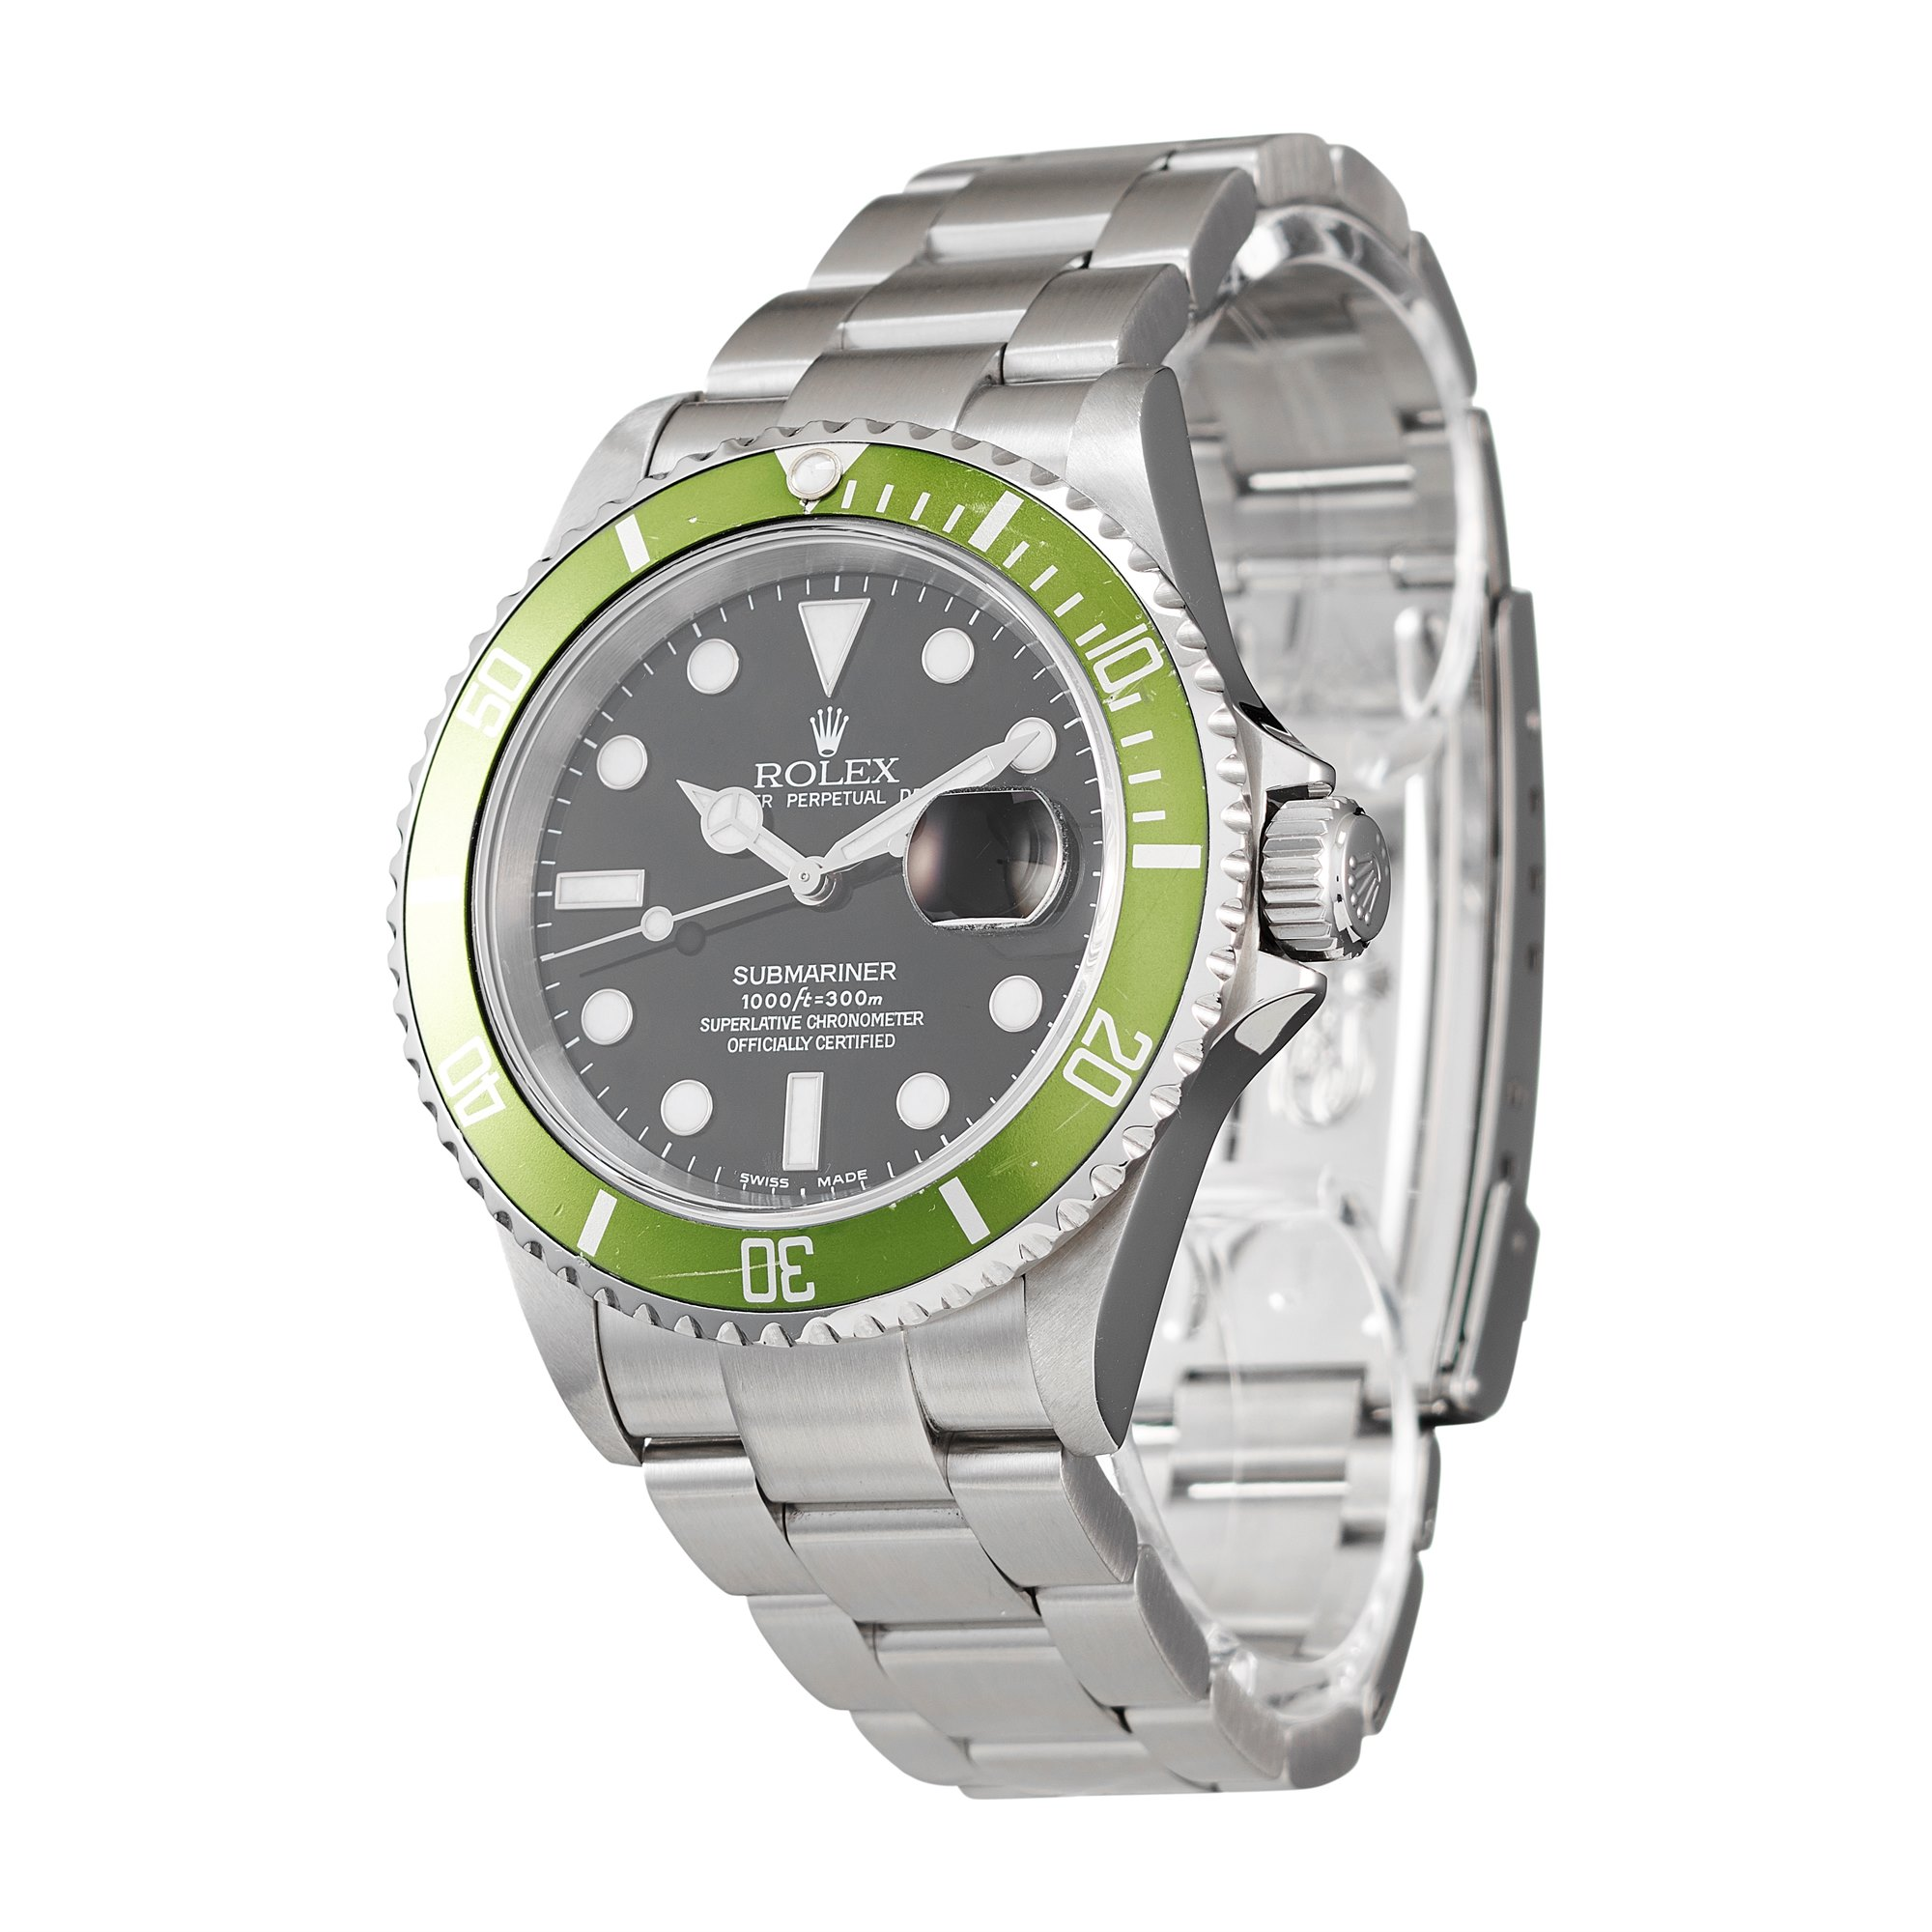 """Rolex Submariner Date """"Flat Four"""" Stainless Steel 16610LV"""